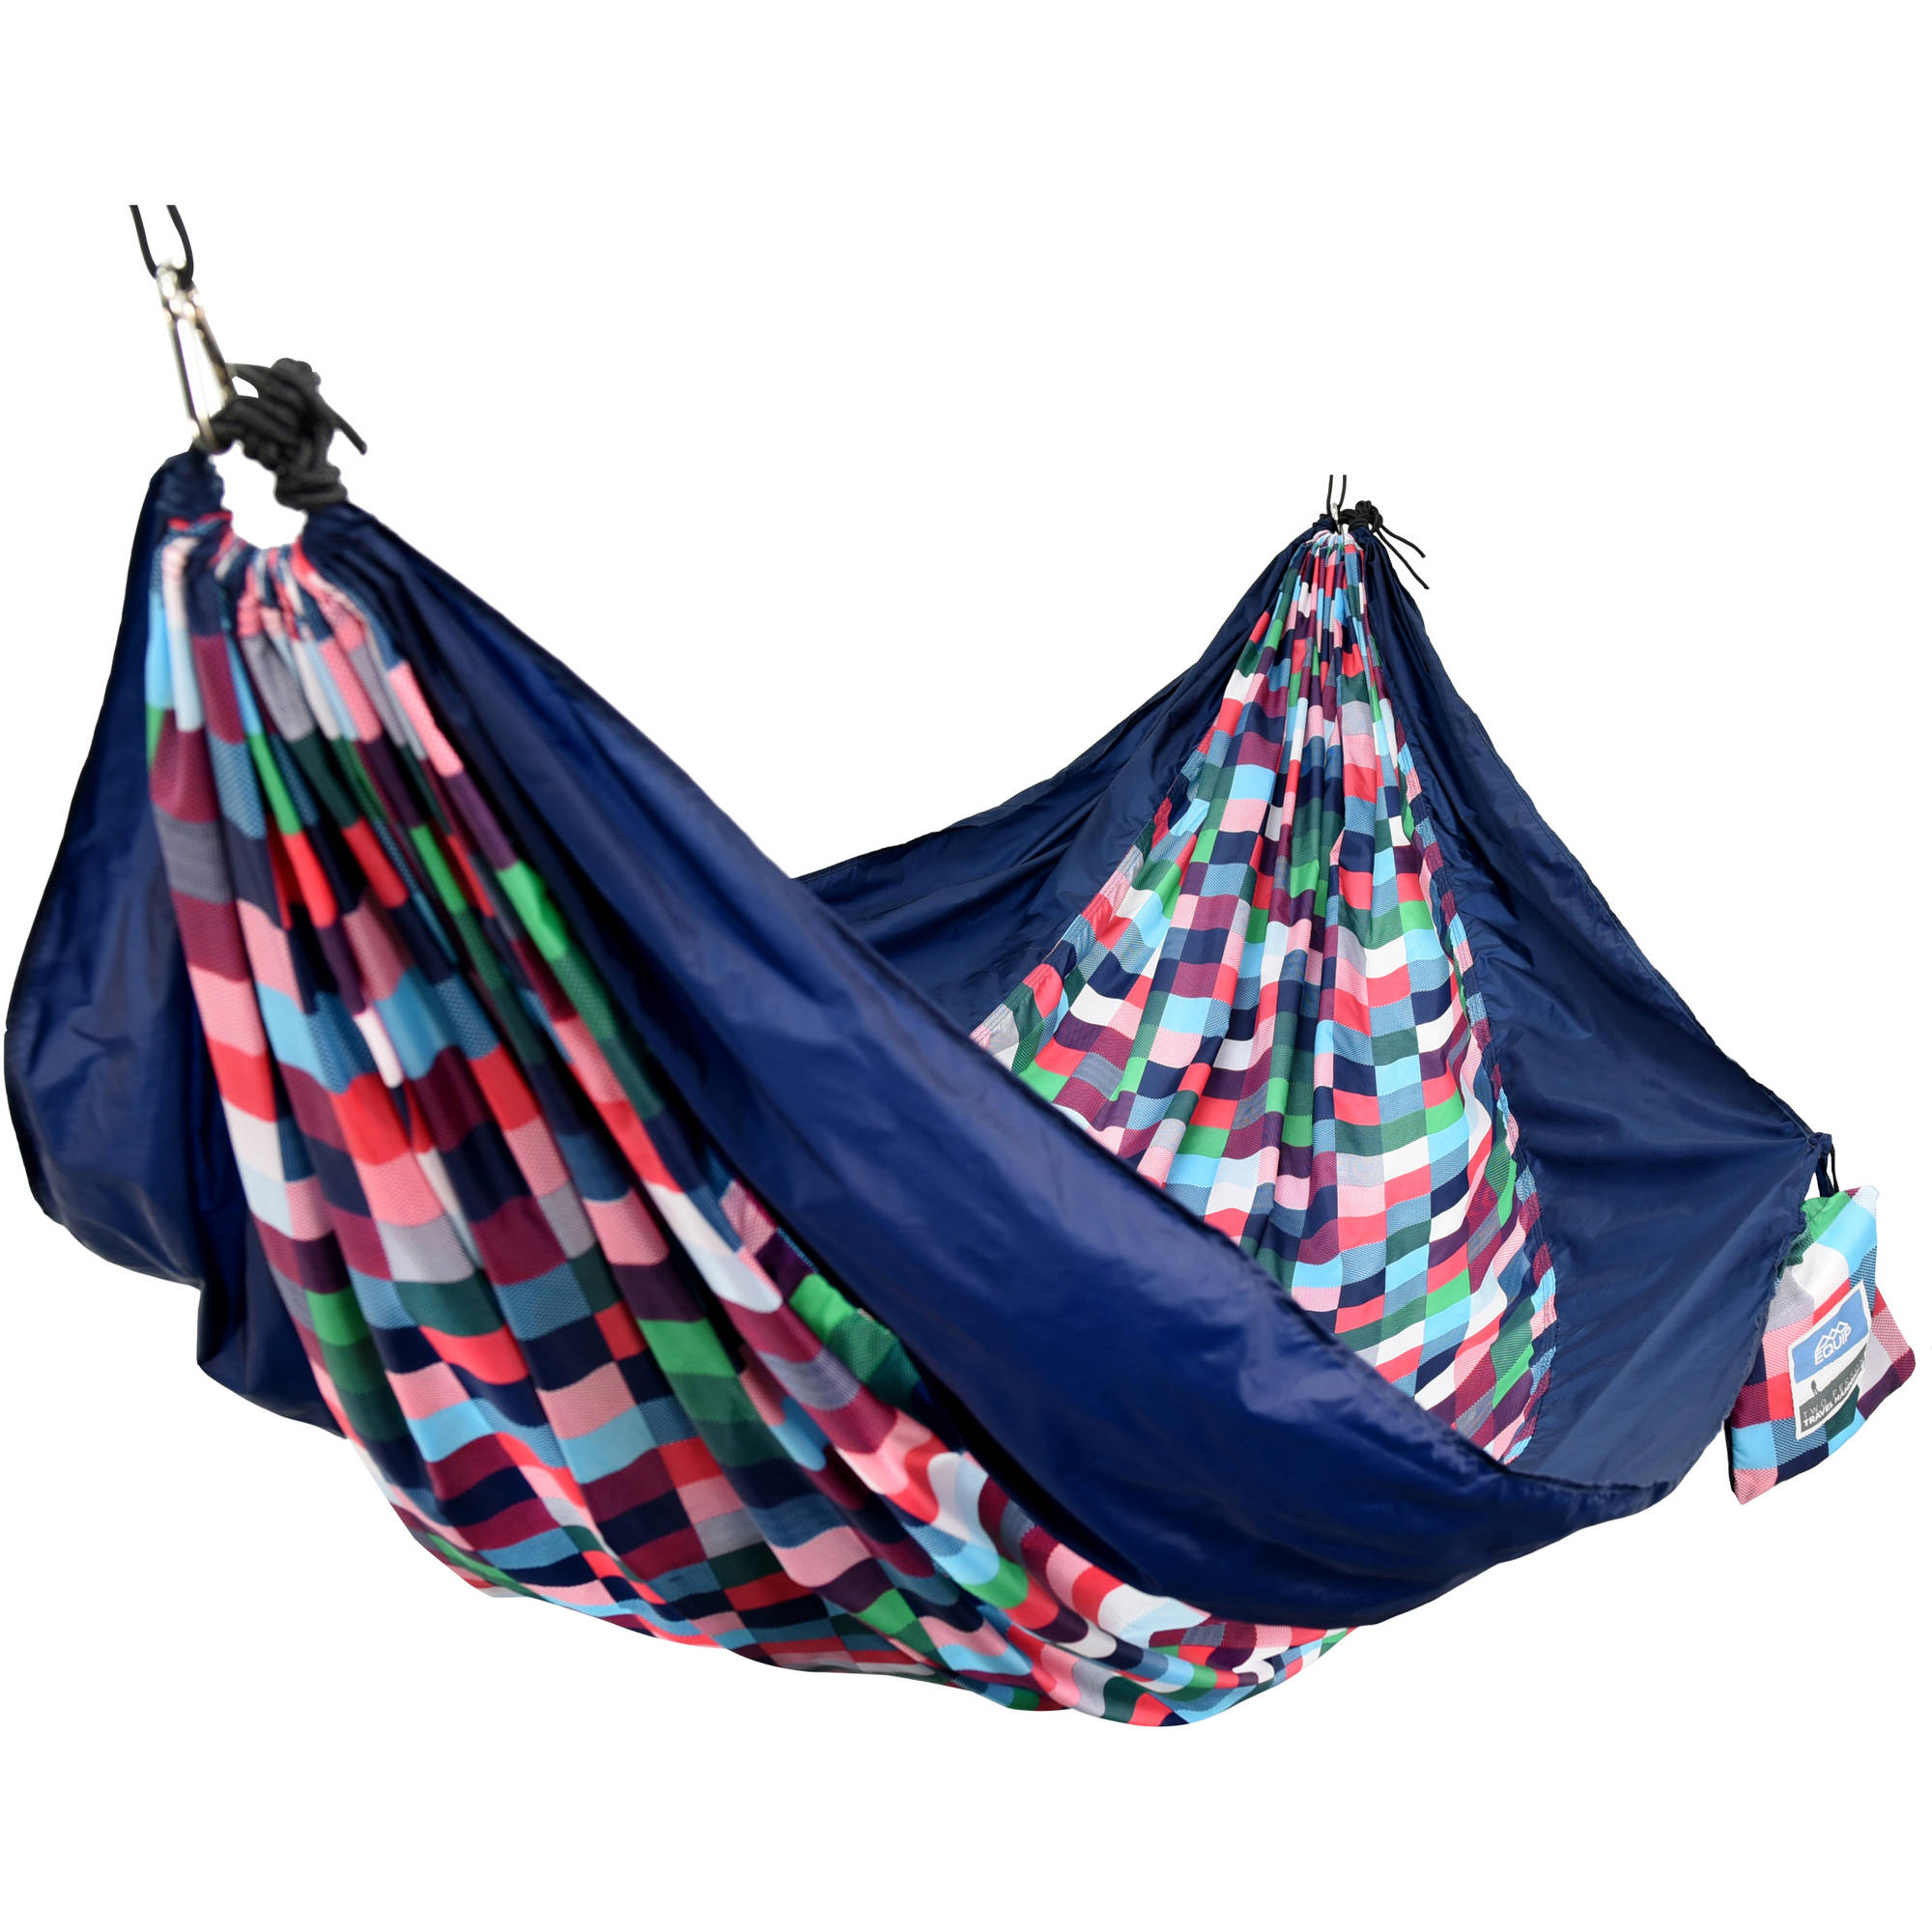 Equip 2-Person Durable Nylon Portable Hammock for Camping, Hiking, Backpacking, Travel, Includes Hanging Kit, Digi by Denovo Brands LLC